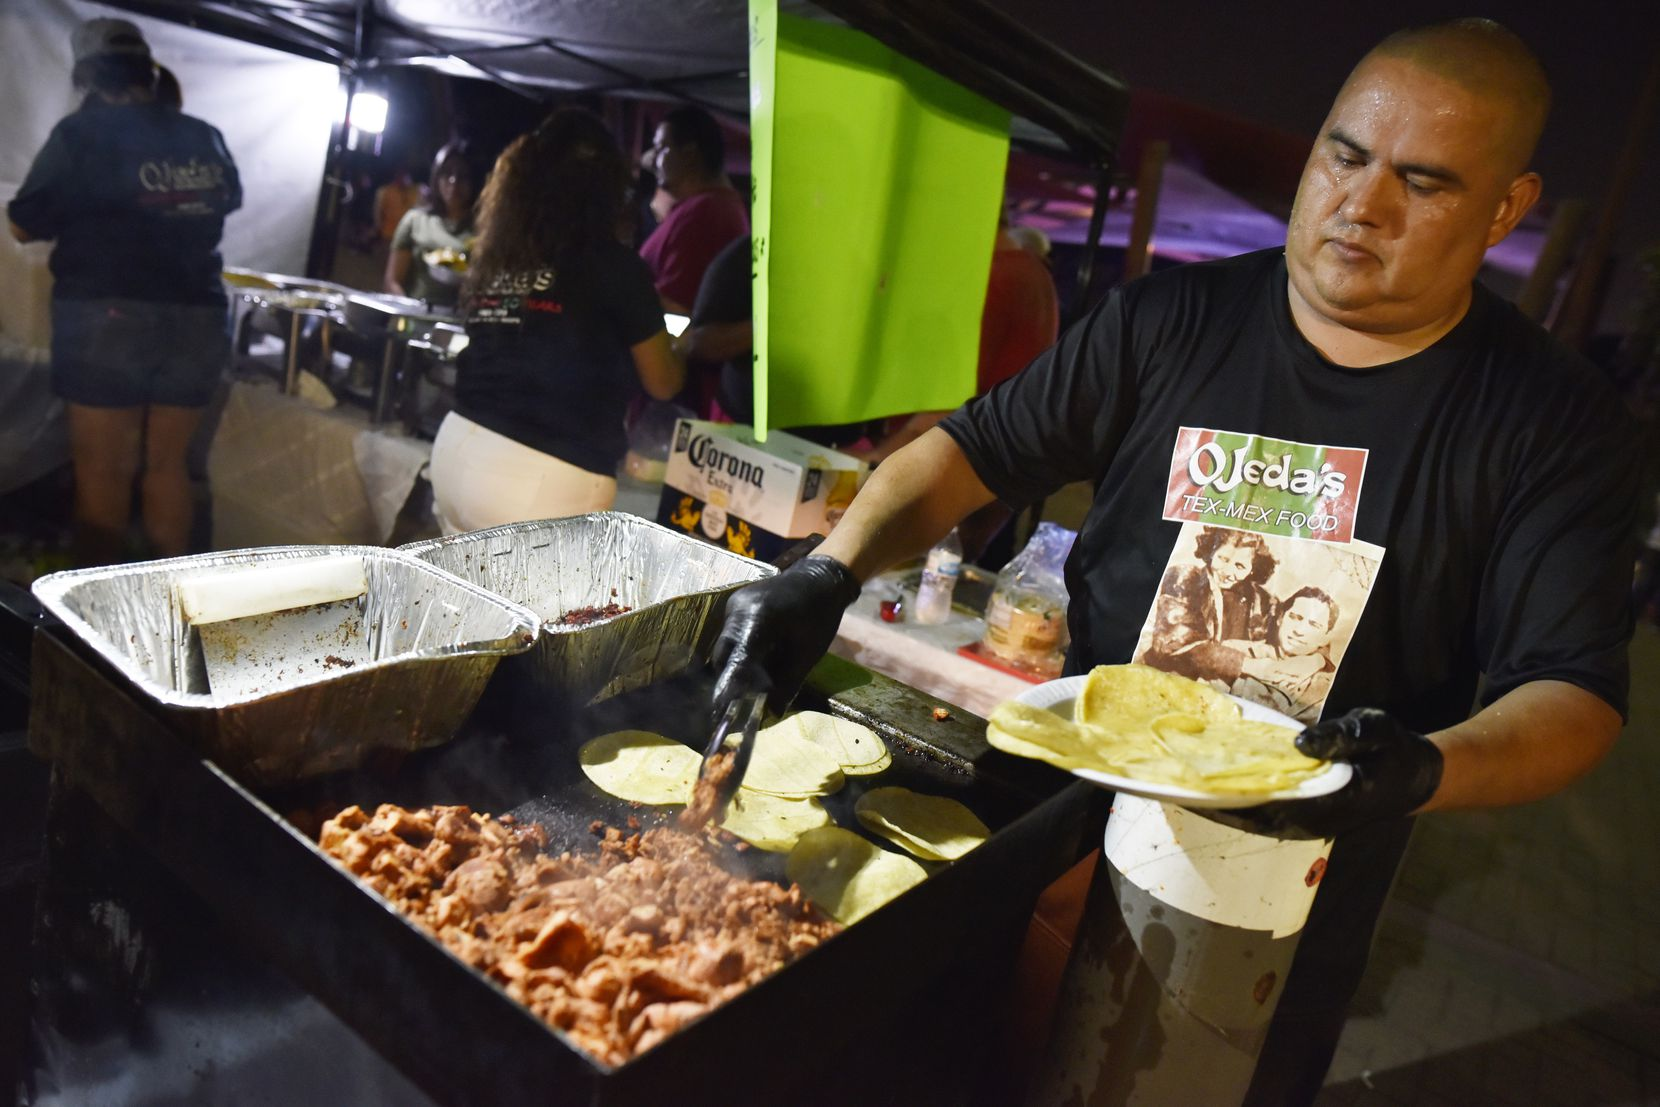 Oscar Carrillo of Ojeda's Restaurant prepares pork tacos at the 2019 Latino Heritage Festival in DeSoto. The 2021 event will be held Sept. 18.